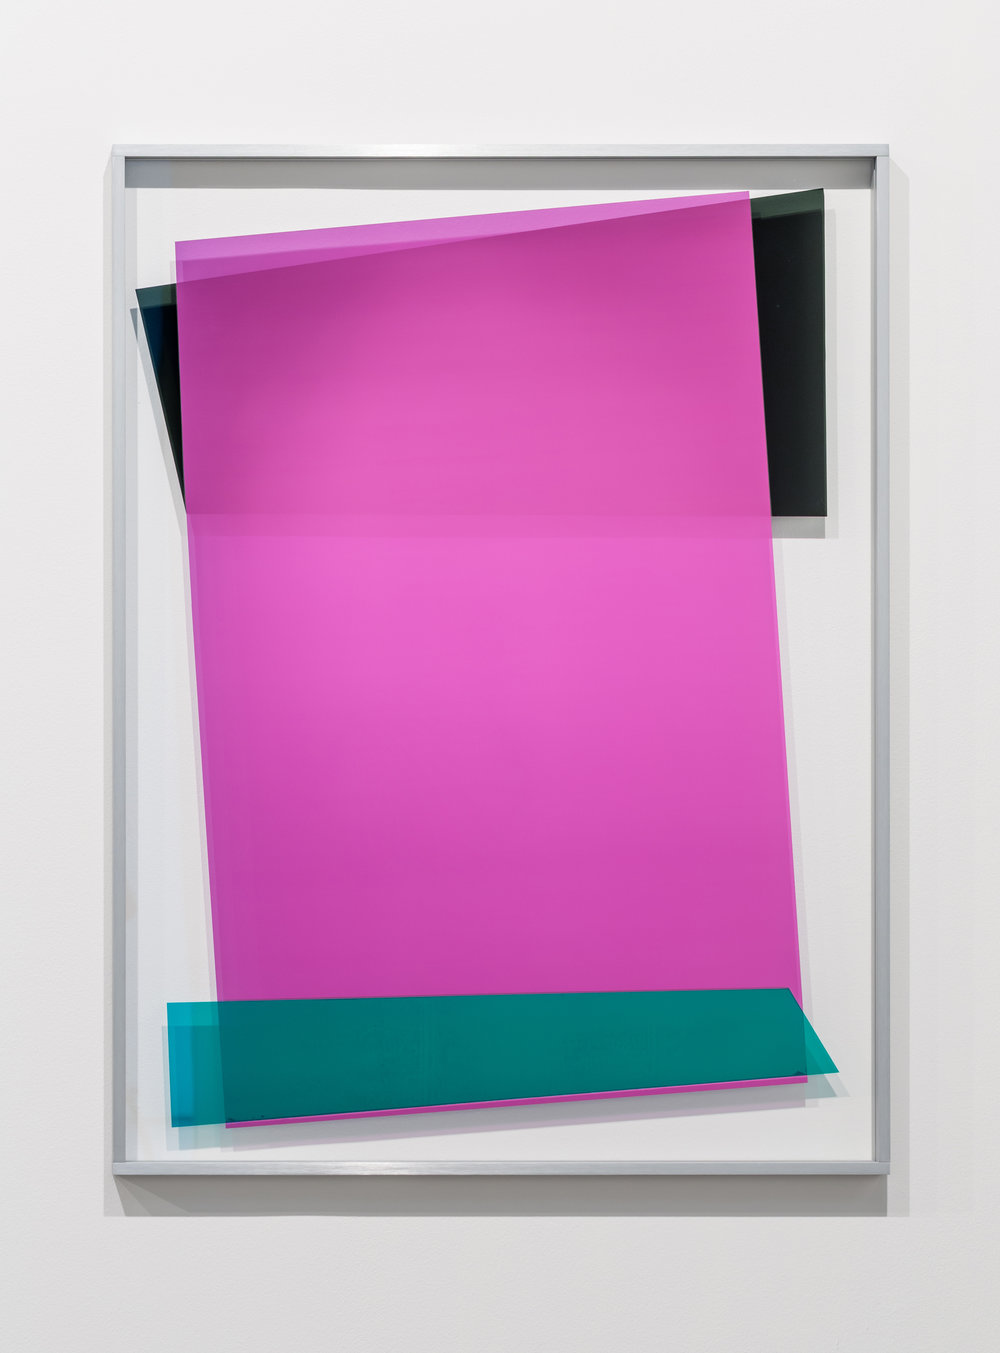 Self-Seeking-Superficials 1707, 2017. Ultra-clear tempered glass, micro-layered polyester solar films and artist's frame in eloxal coated aluminium. 121.5 x 91.5 cm. Courtesy of  the aGallery Isabelle Van Den Eynde.